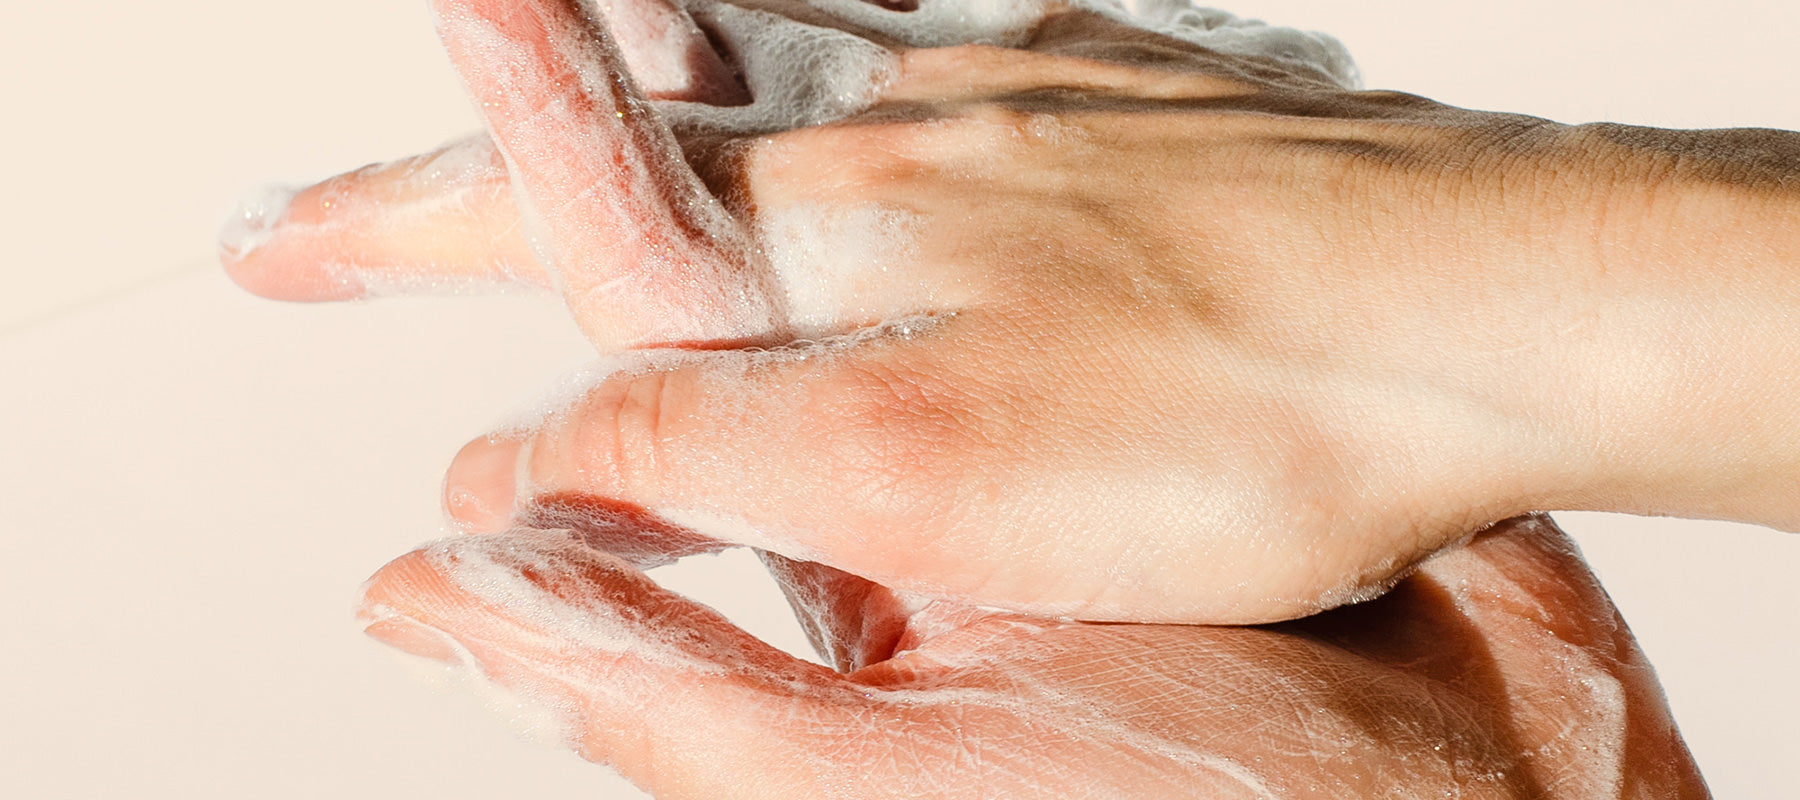 Hands washing with soap all natural lather on a peach background.